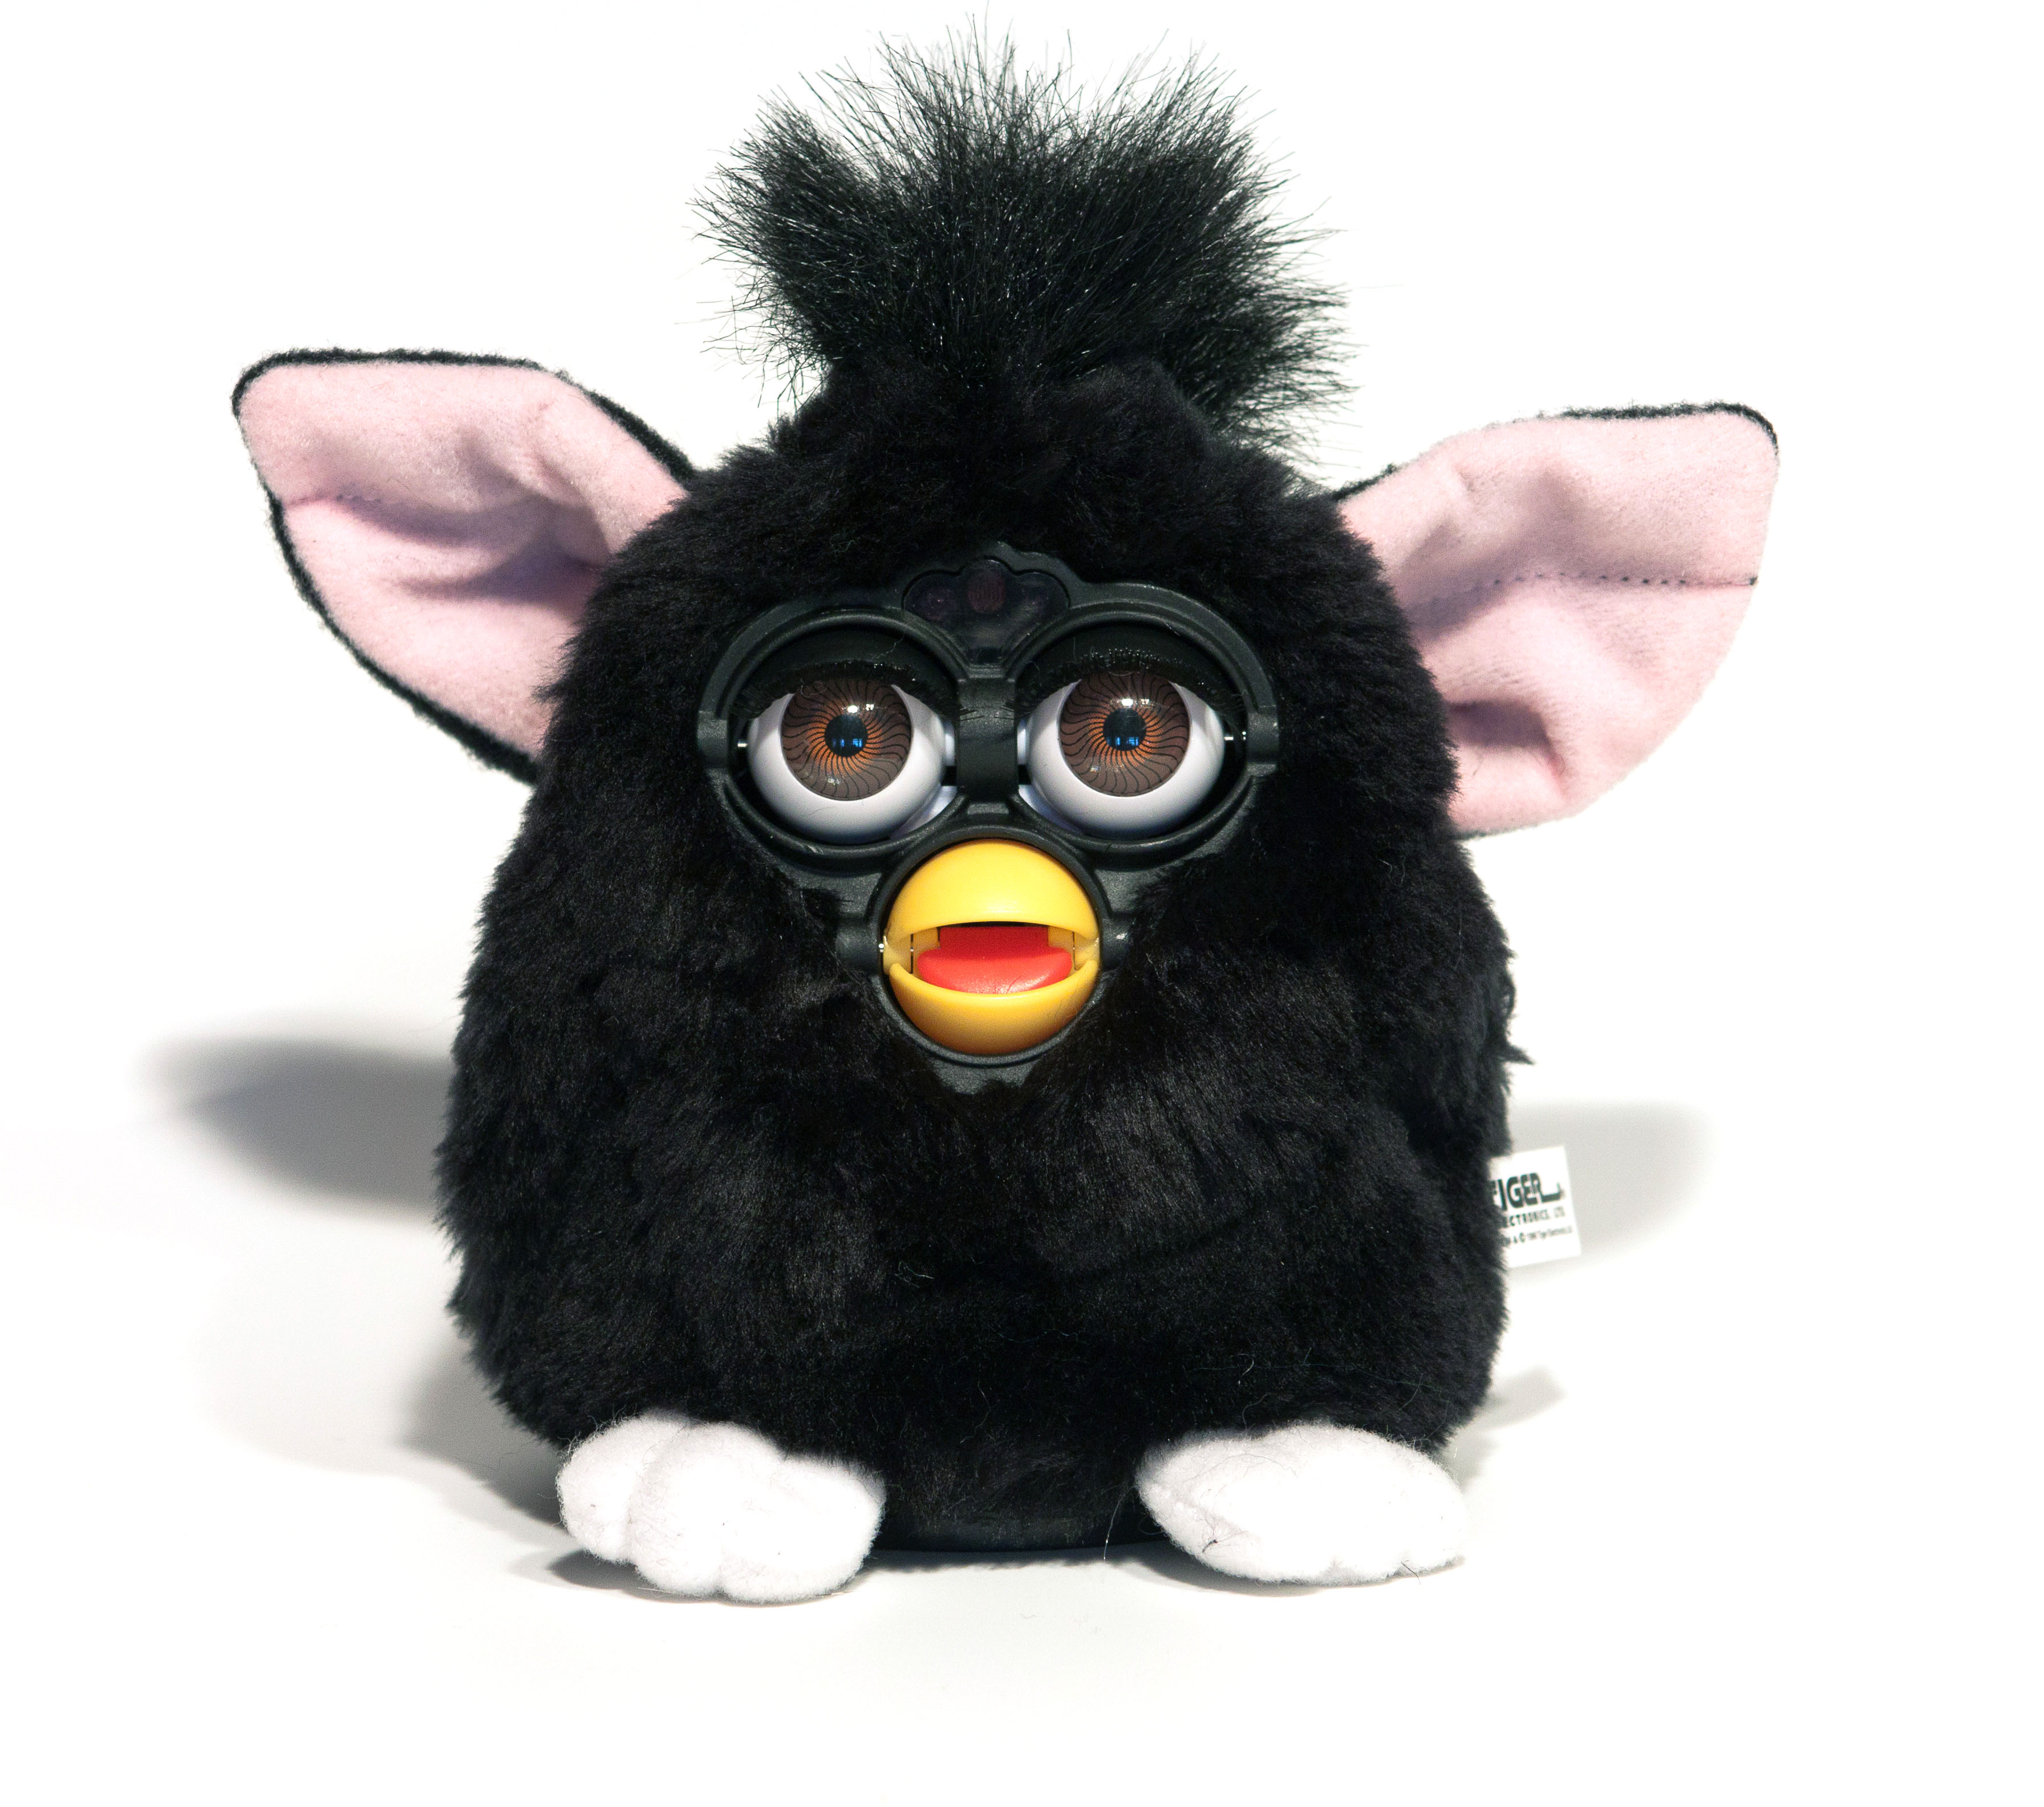 1998 Furby model in black, by Tiger Electronics